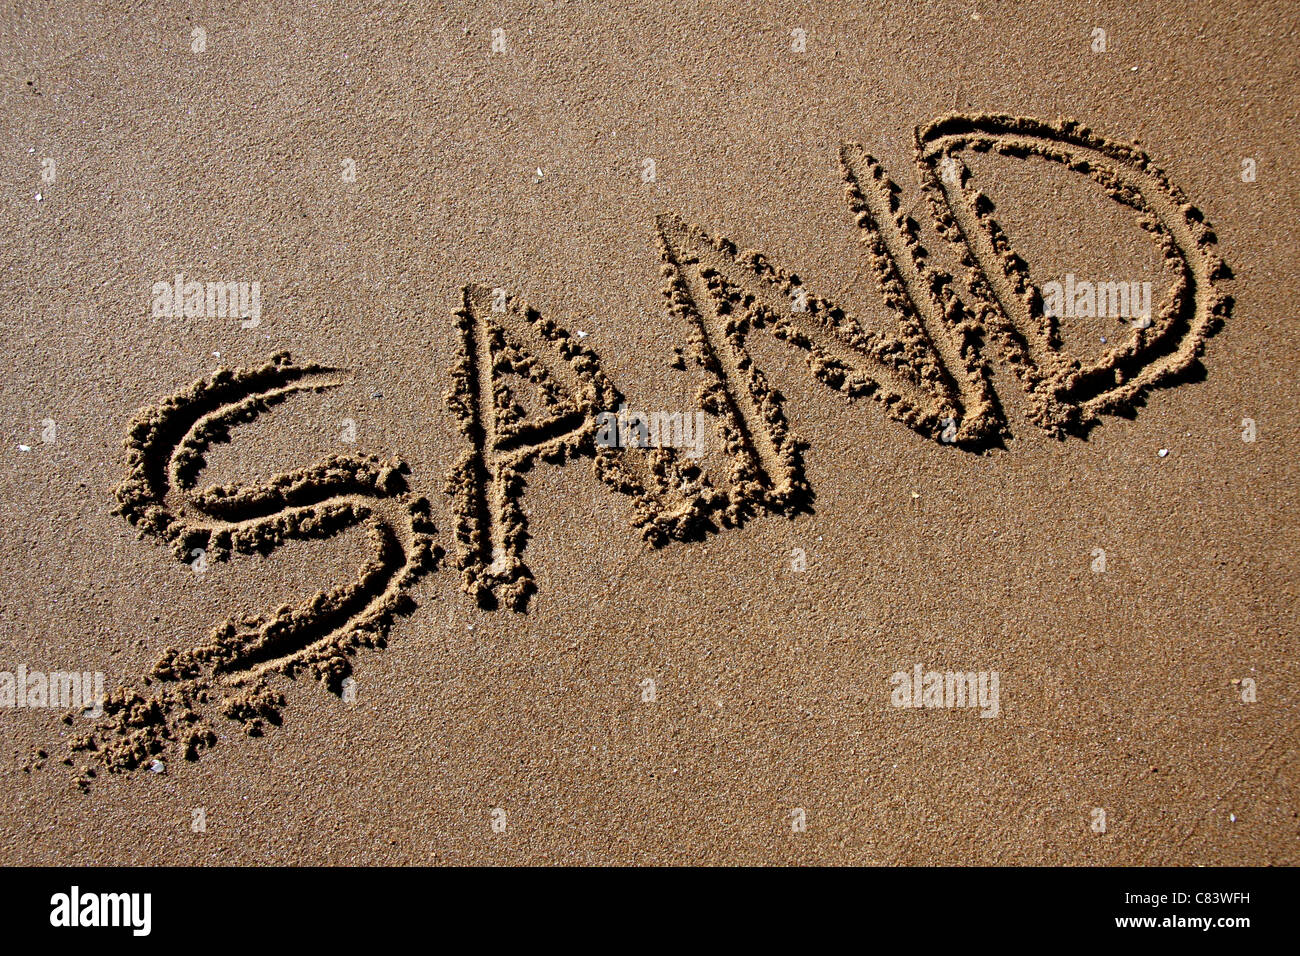 Sand in the sand - Stock Image